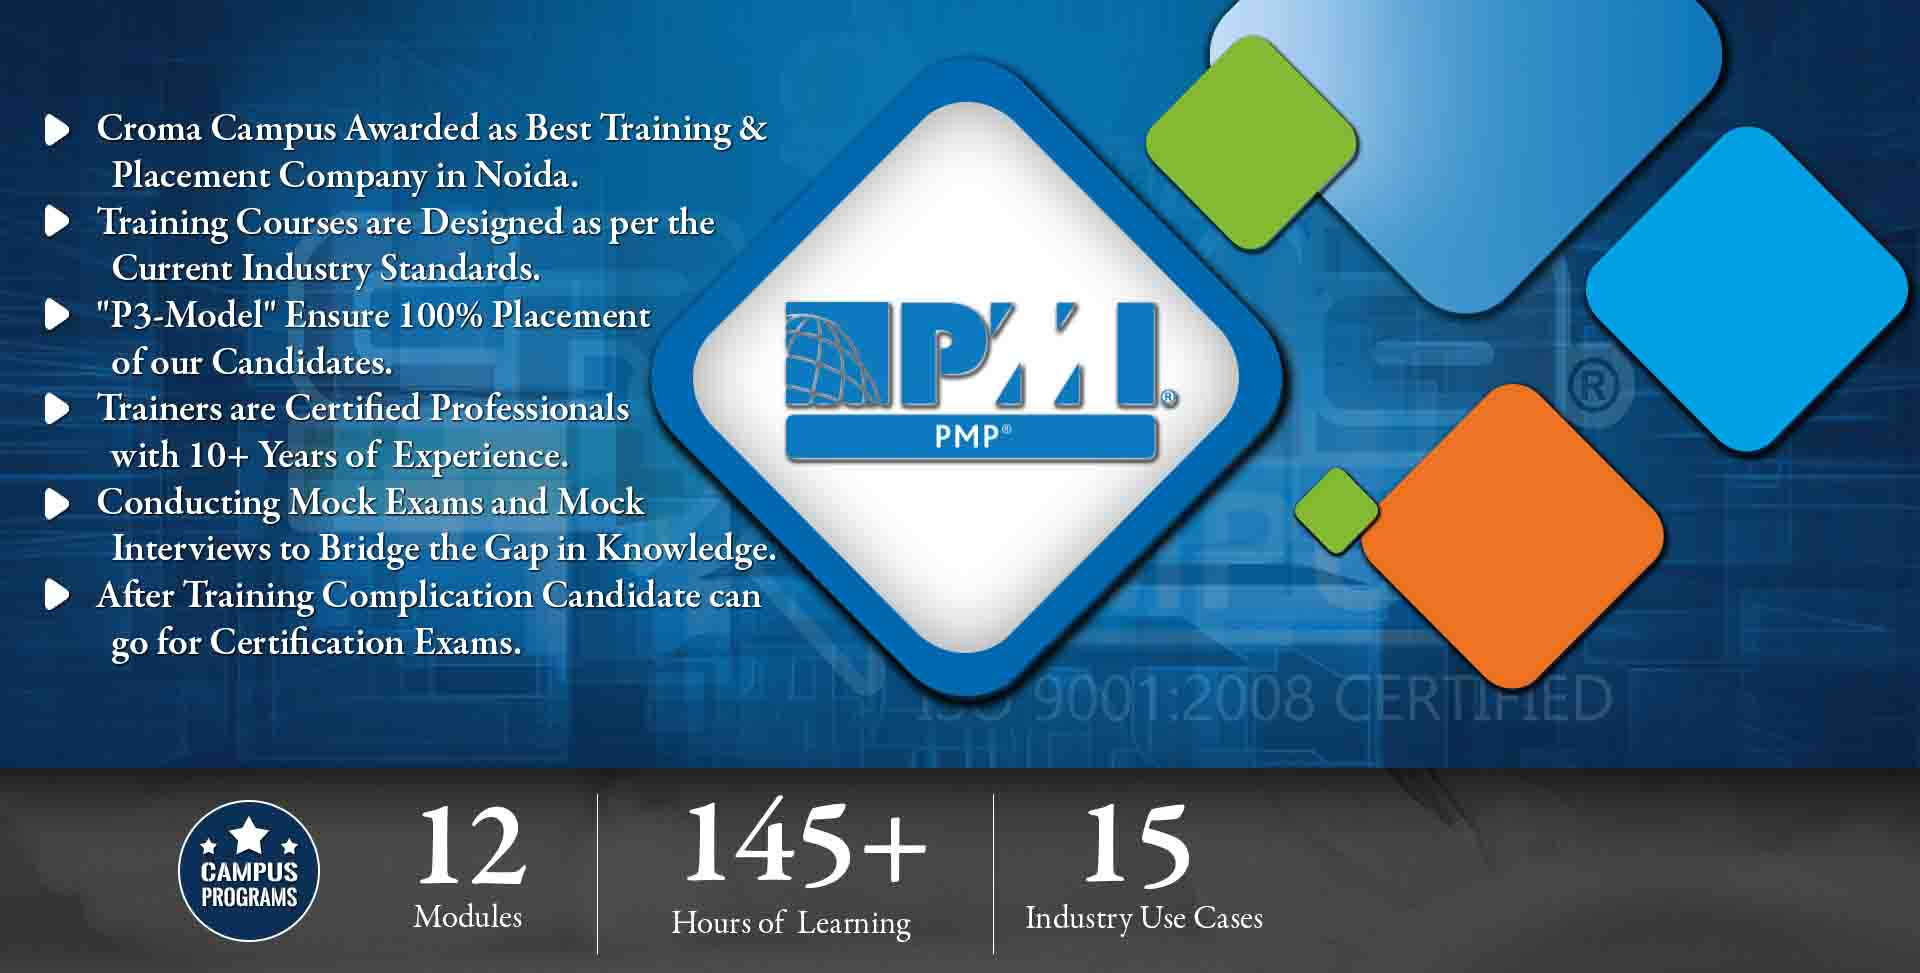 Pmp Training In Noida Pmp Training Institute In Noida Croma Campus